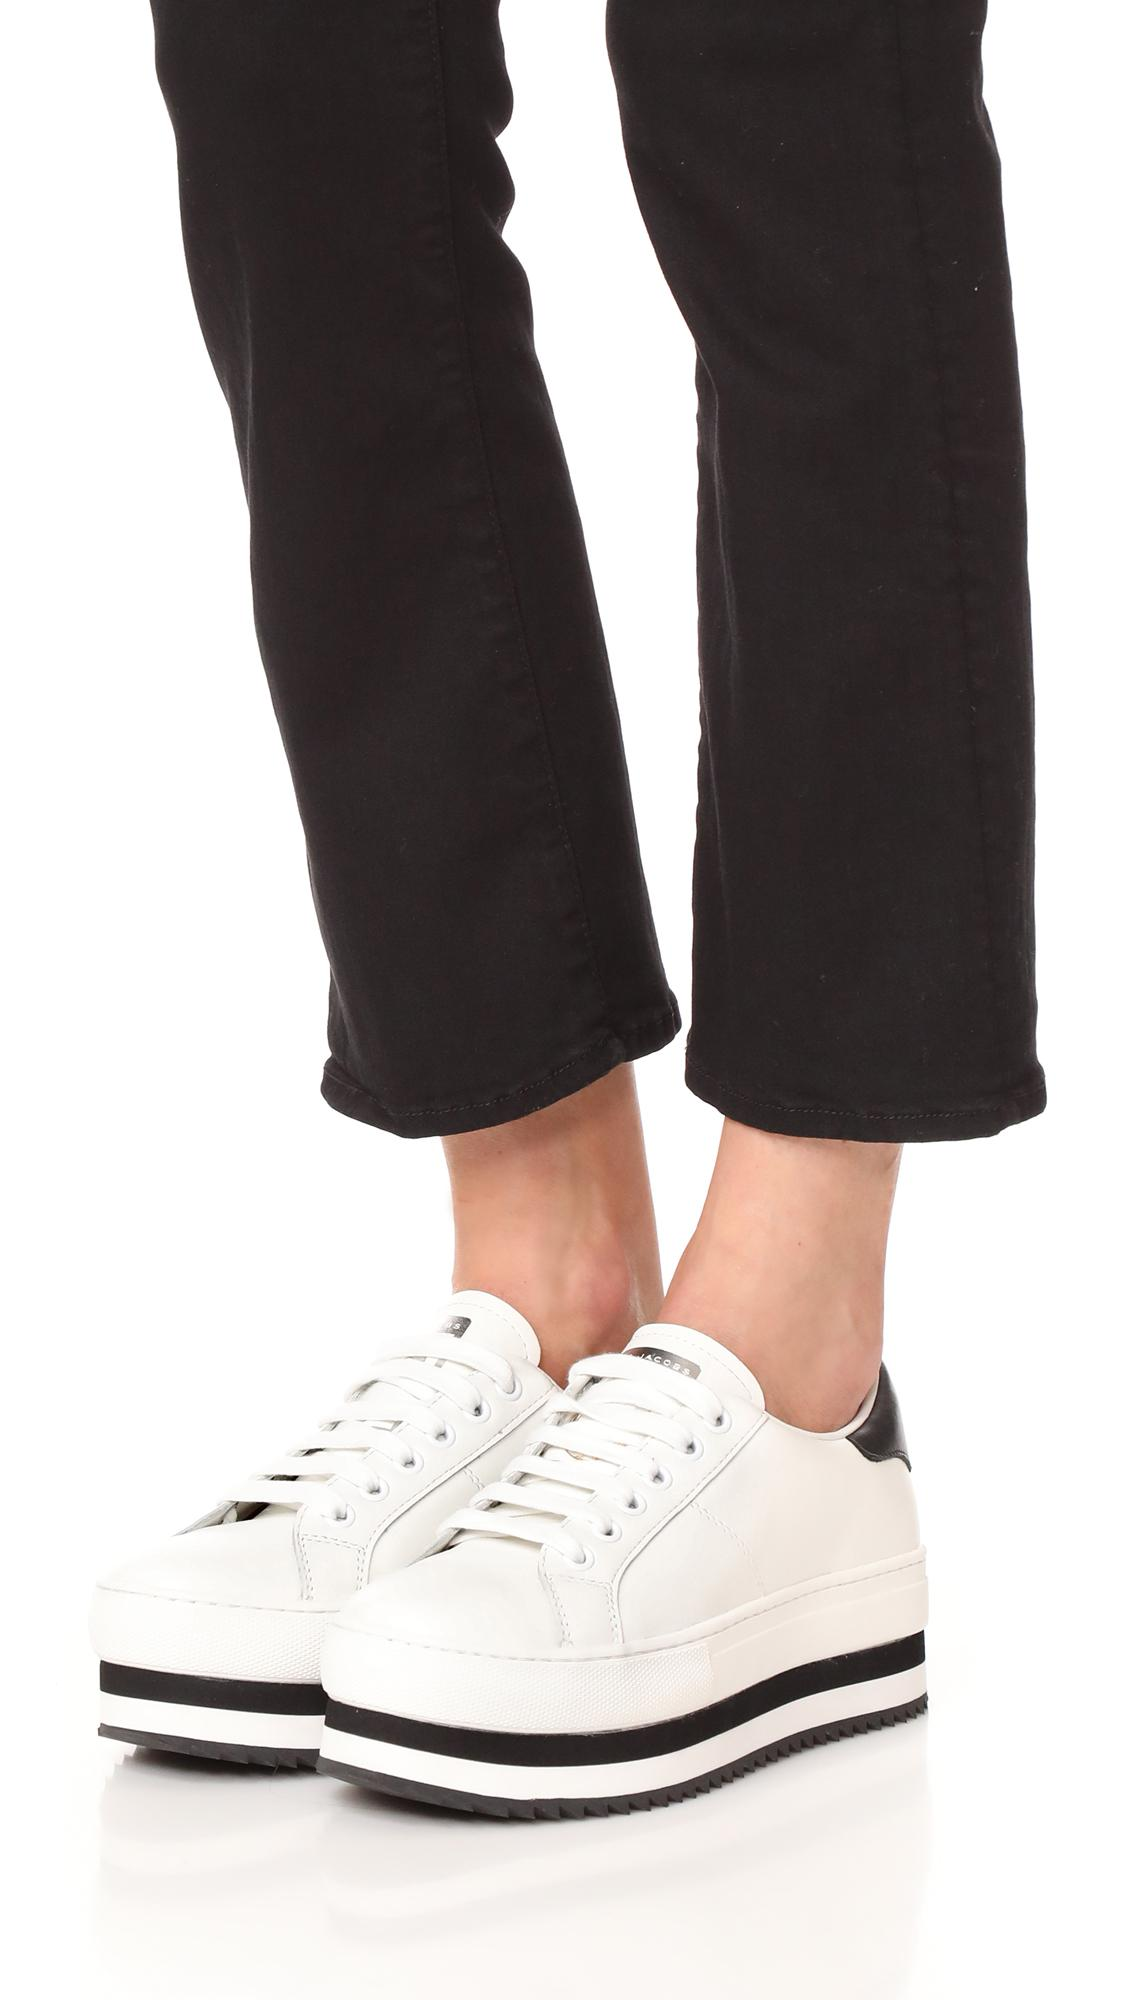 21abc7cae044 Lyst - Marc Jacobs Grand Platform Sneakers in White